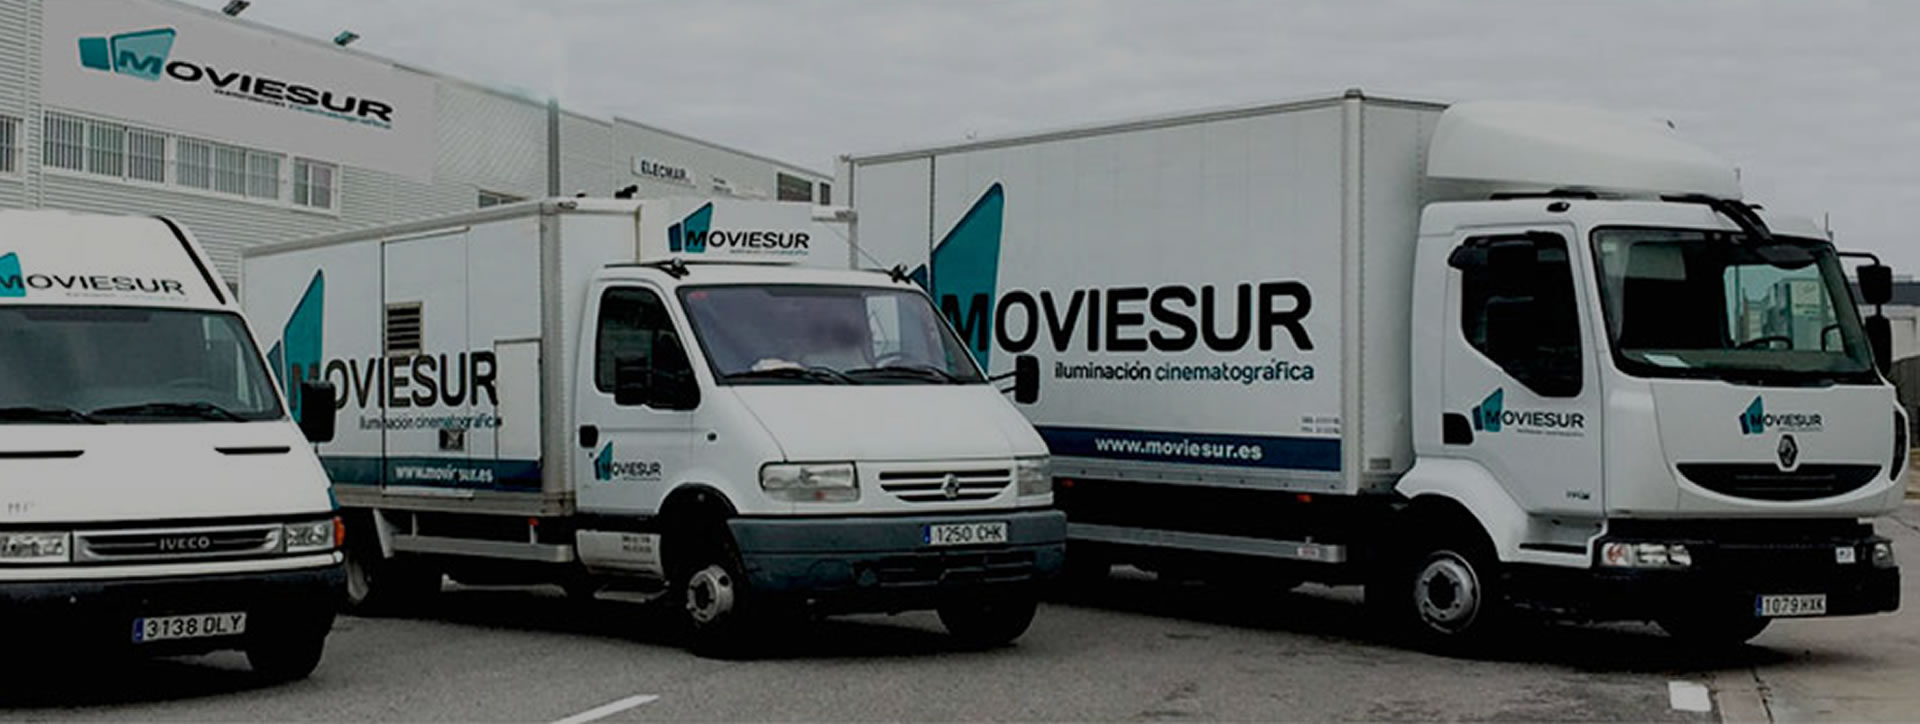 Moviesur - Transporte